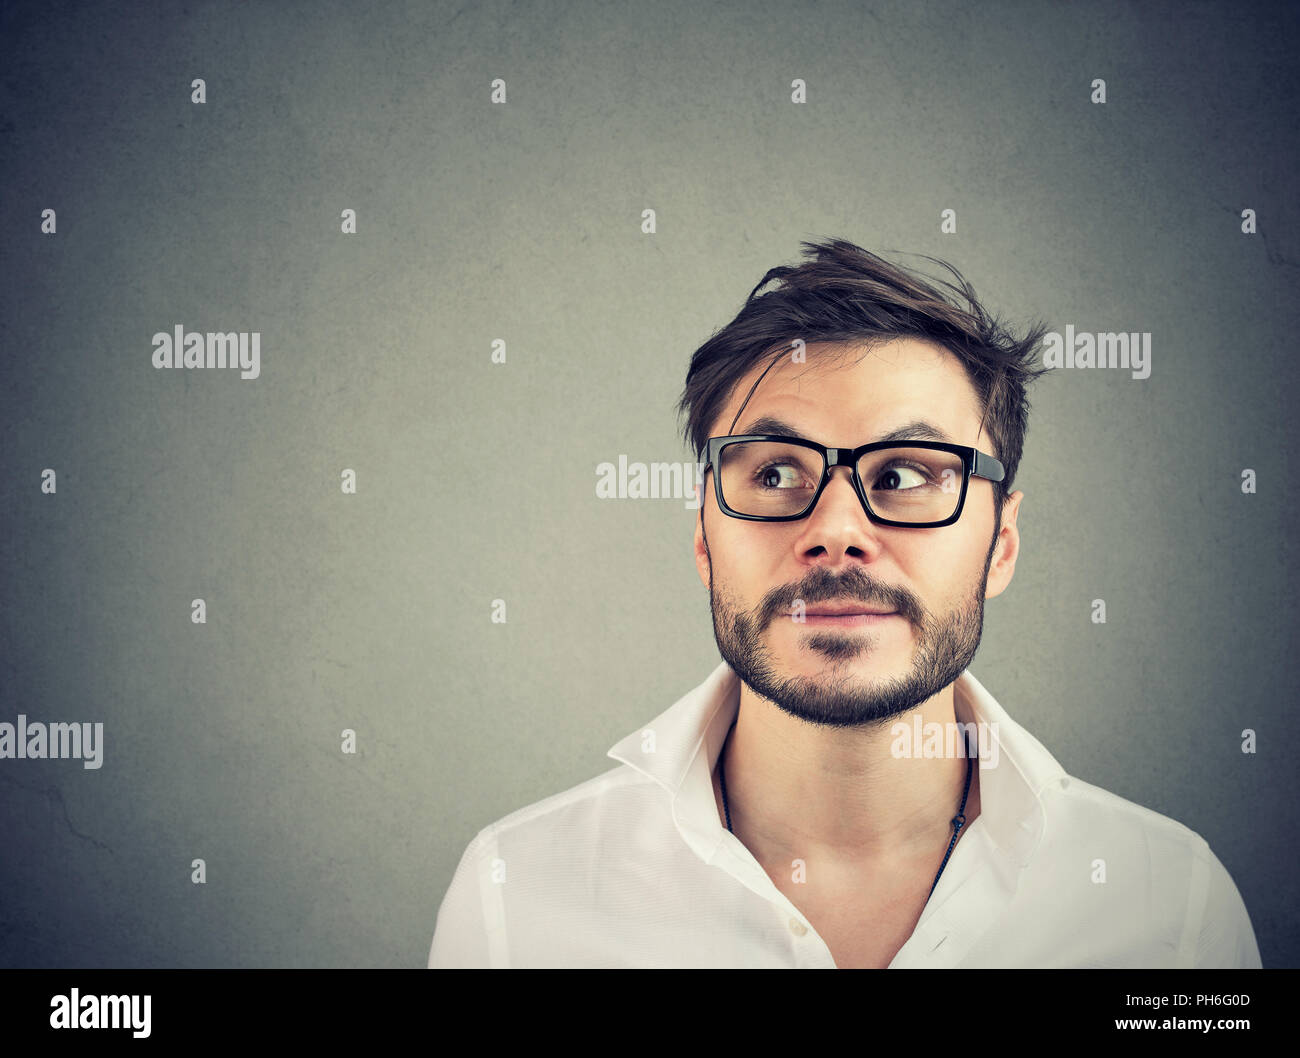 Handsome bearded man looking up in contemplation making decision on gray background - Stock Image